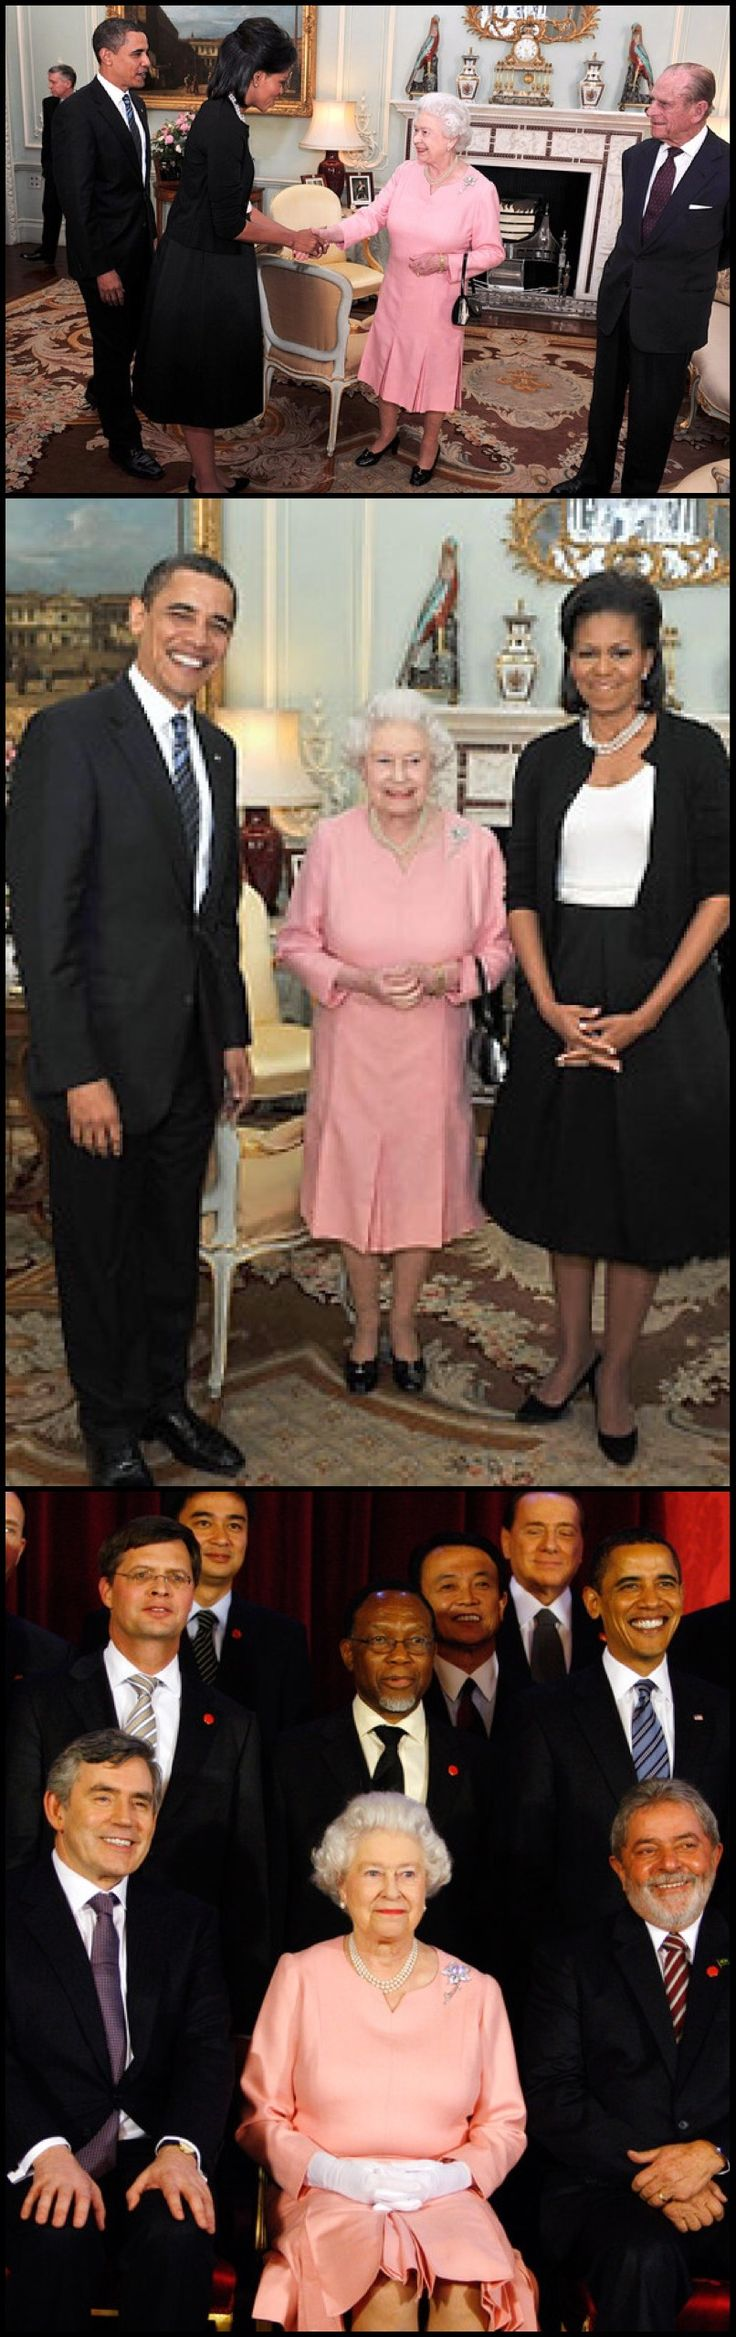 First Visit 2009 44th President Barack Obama and his wife  First Lady Michelle Obama meet with Queen Elizabeth II and Prince Philip Duke of Edinburgh during an audience at Buckingham Palace on April 1, 2009 in London, England